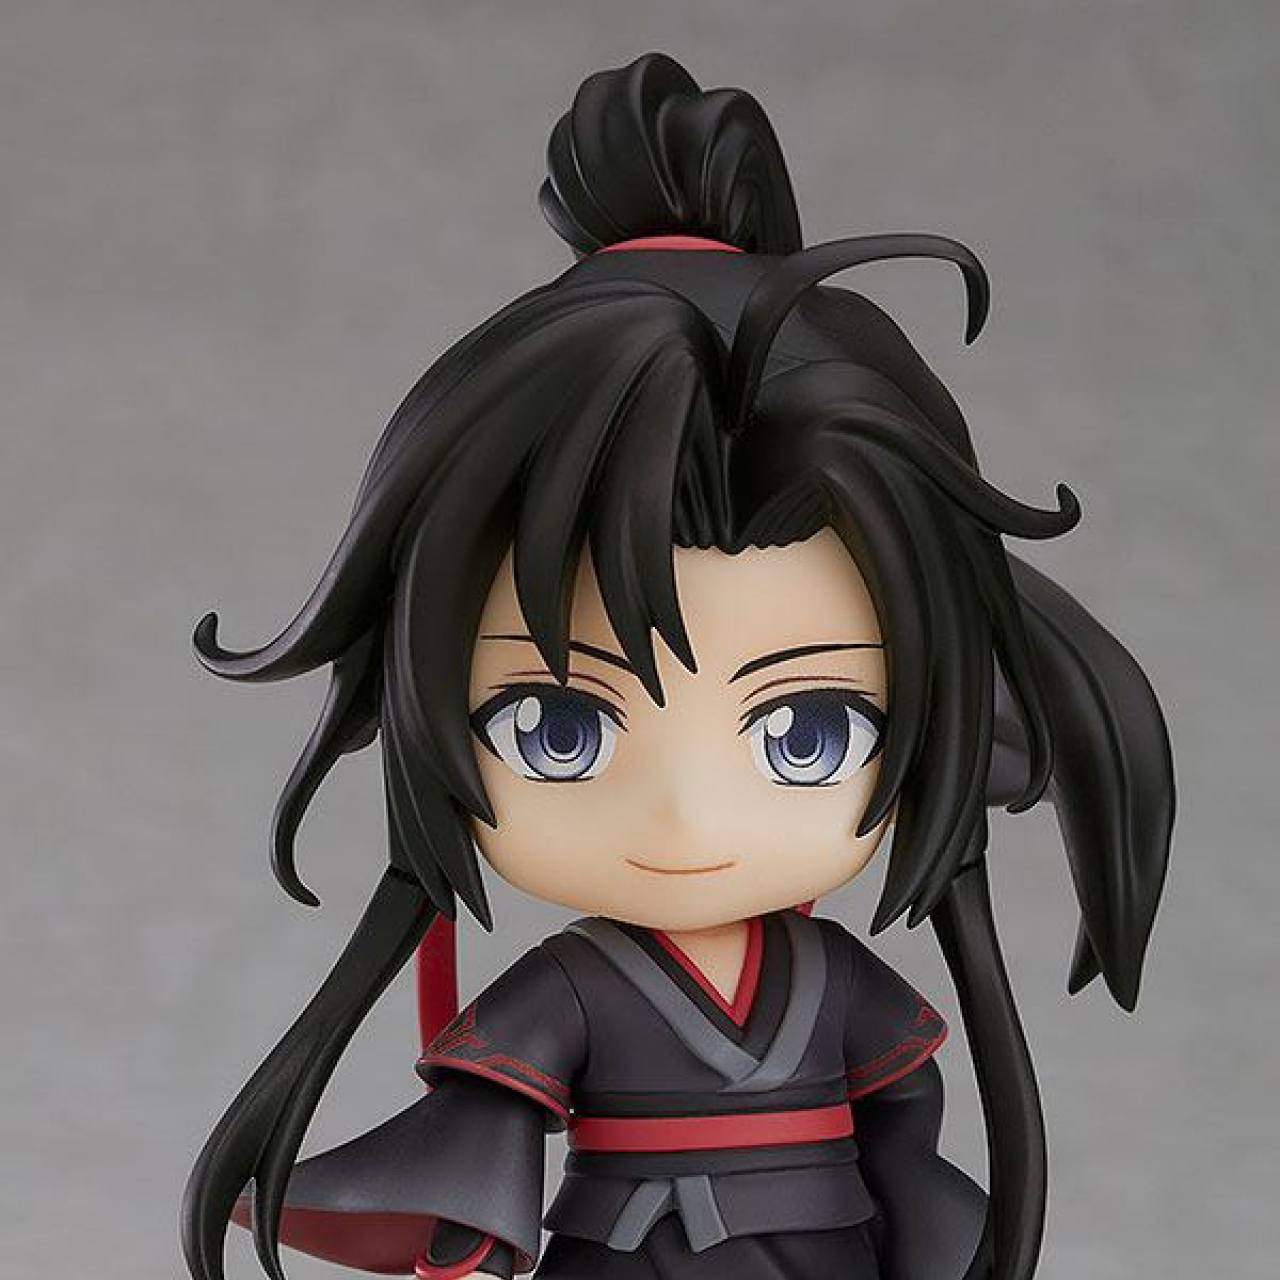 Grandmaster of Demonic Cultivation Nendoroid Action Figure Wei Wuxian 10 cm